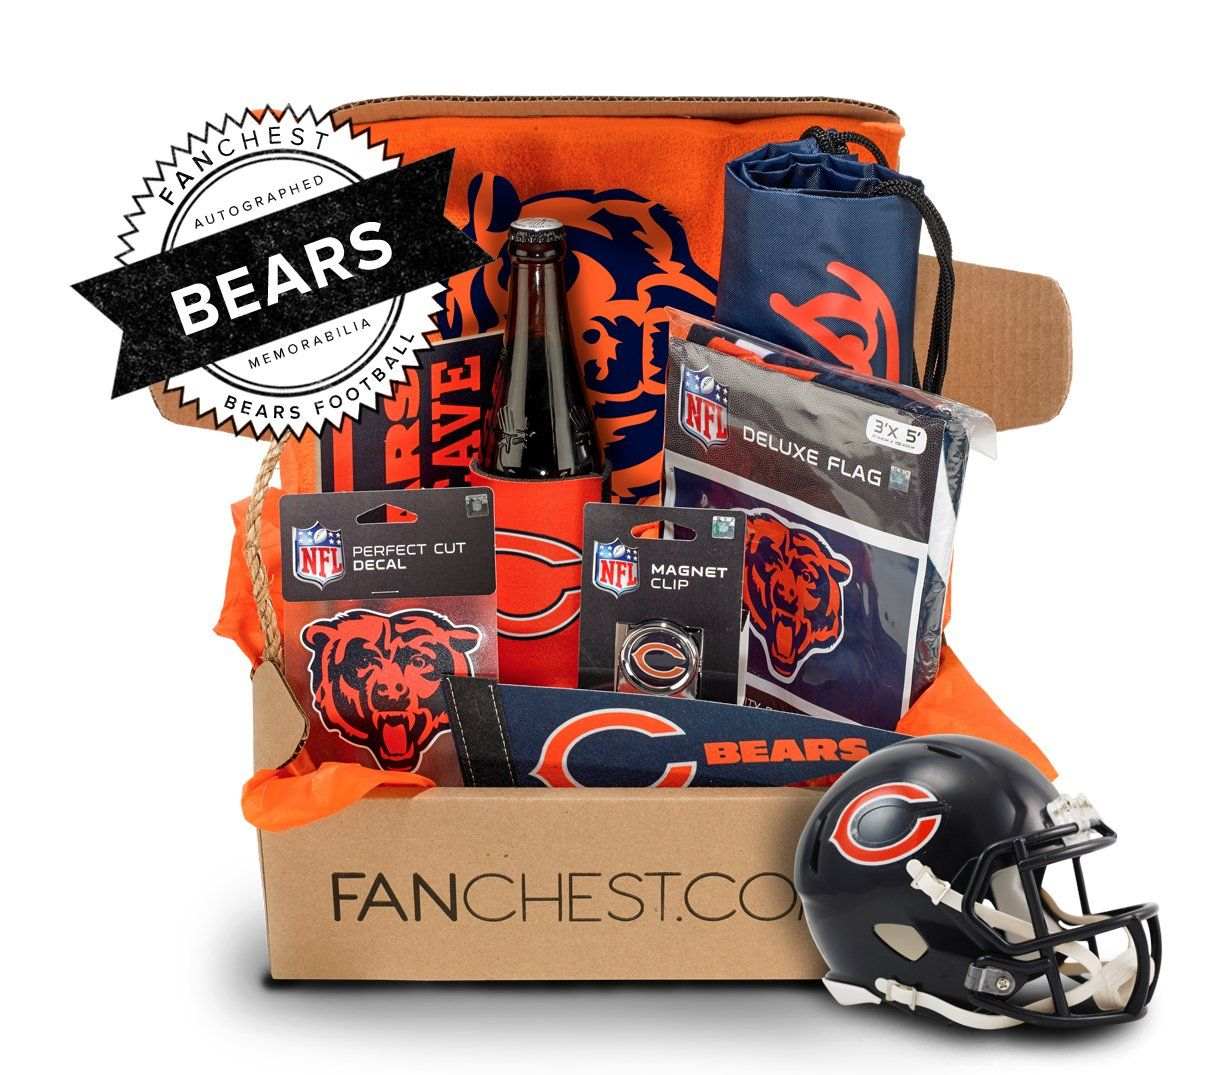 on sale d4d0f ca8de Bears Memorabilia FANCHEST 3 - Jordan Howard - $180 ...